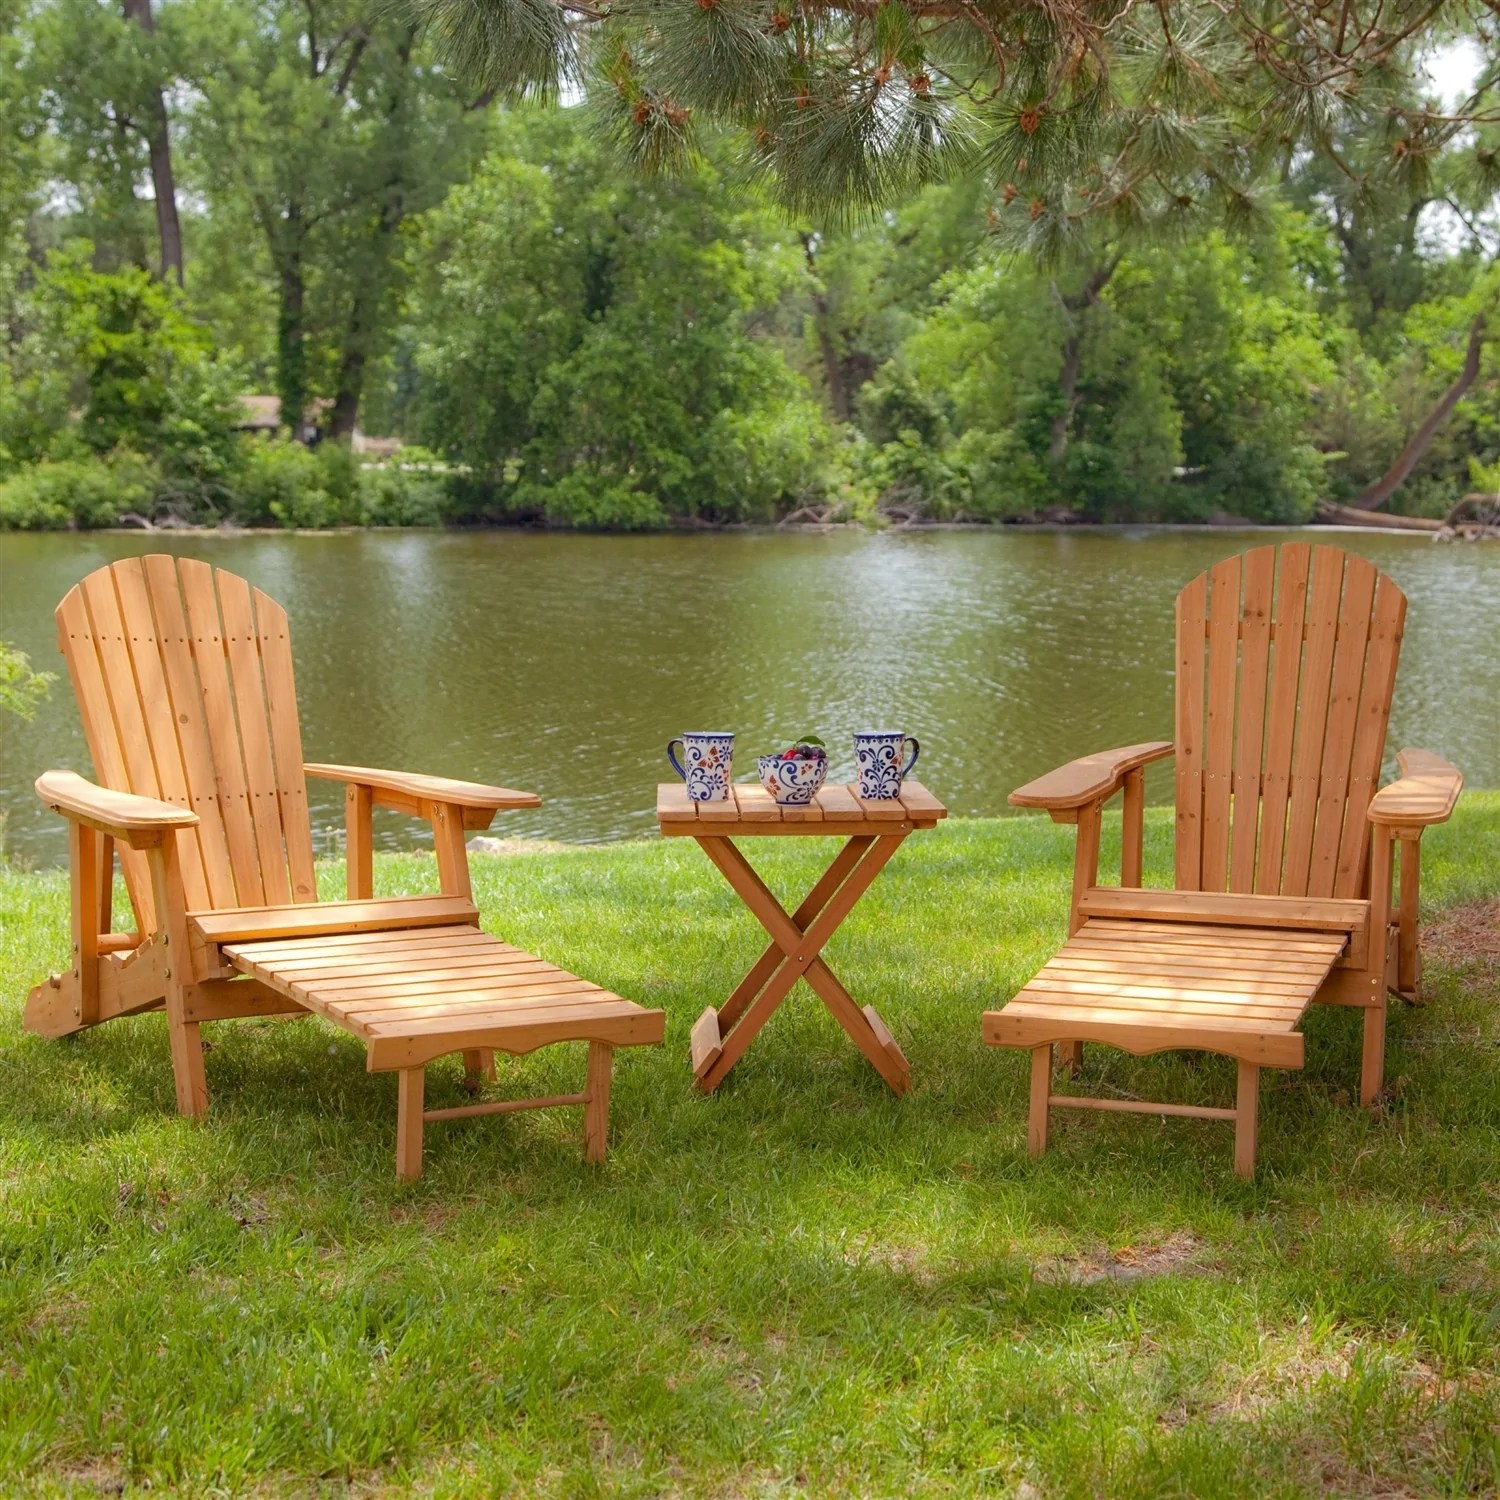 Adirondack Chair Set 3 Piece Patio Furniture Set With 2 Adirondack Chairs And Side Table